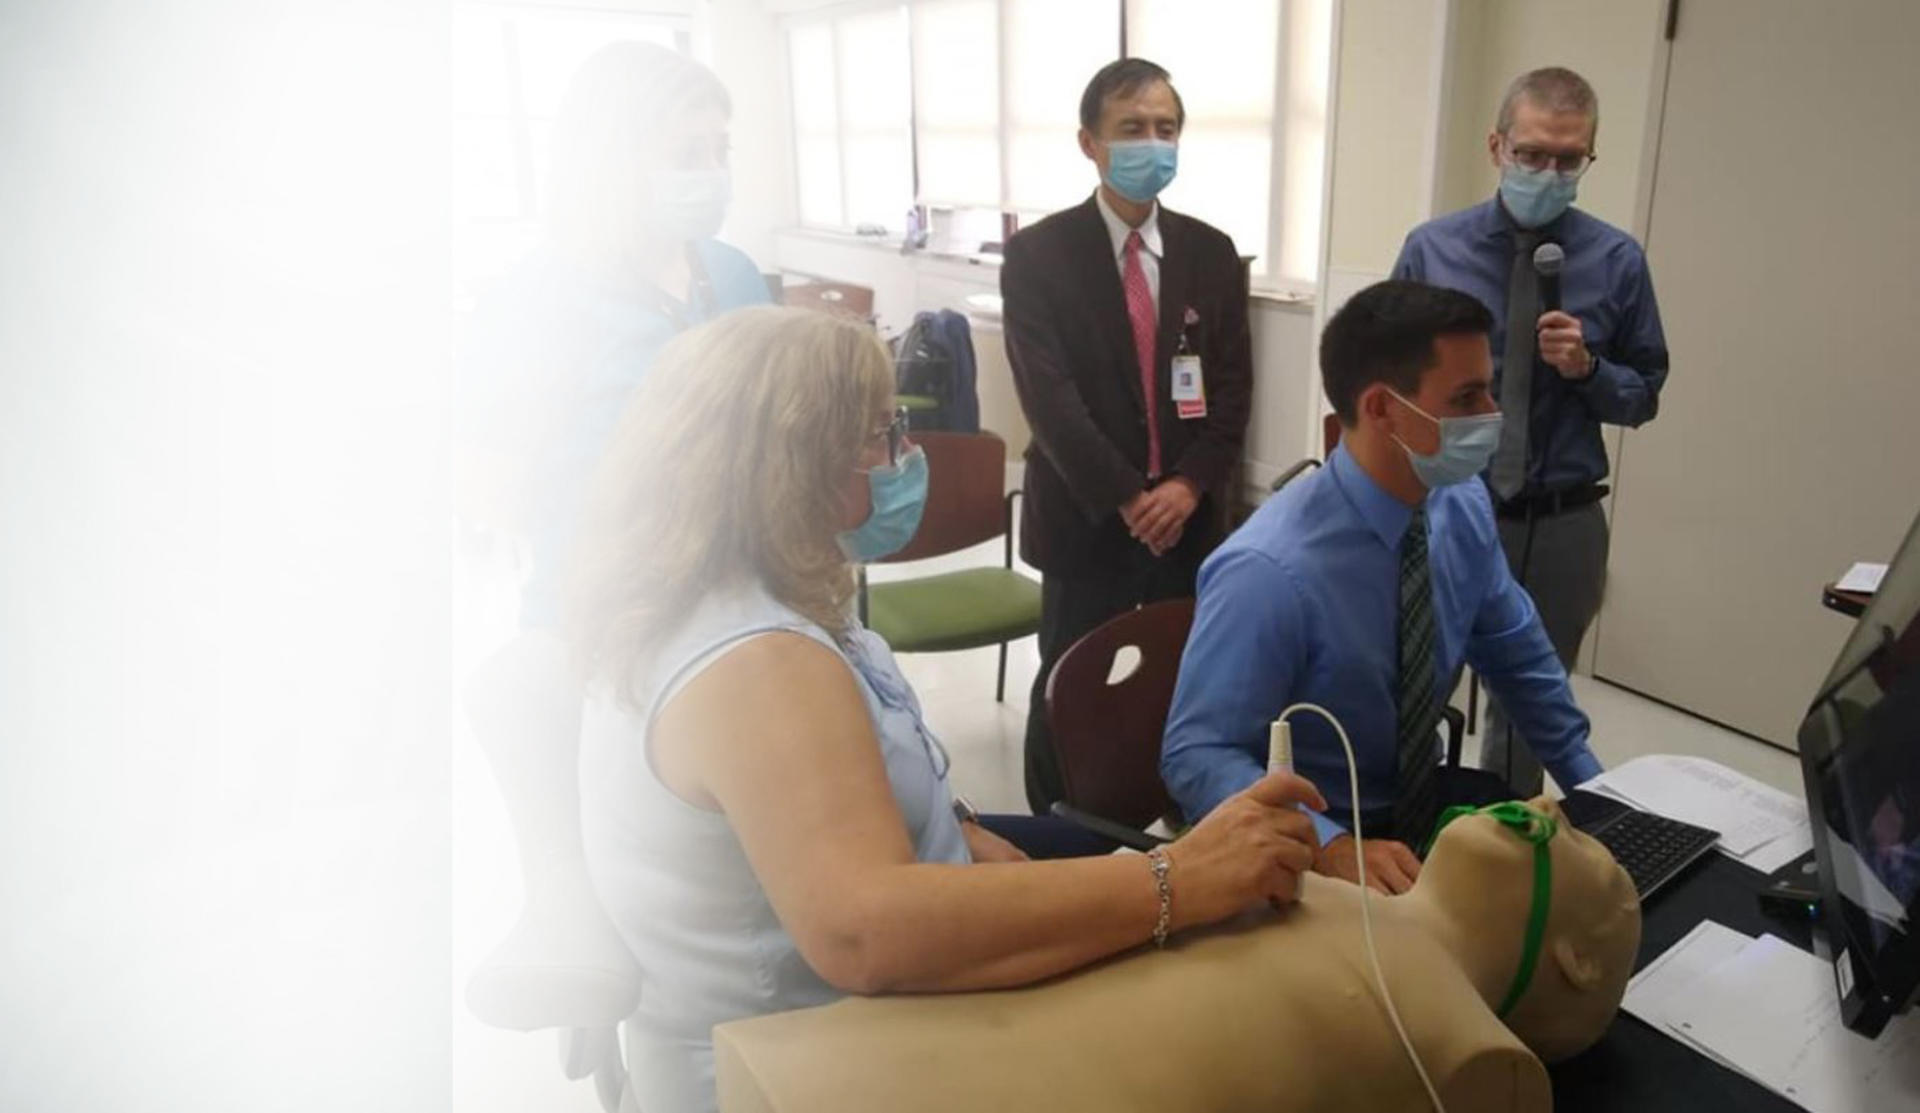 Ultrasound Mentor Training Simulator Replaces Standardized Patients at Conference